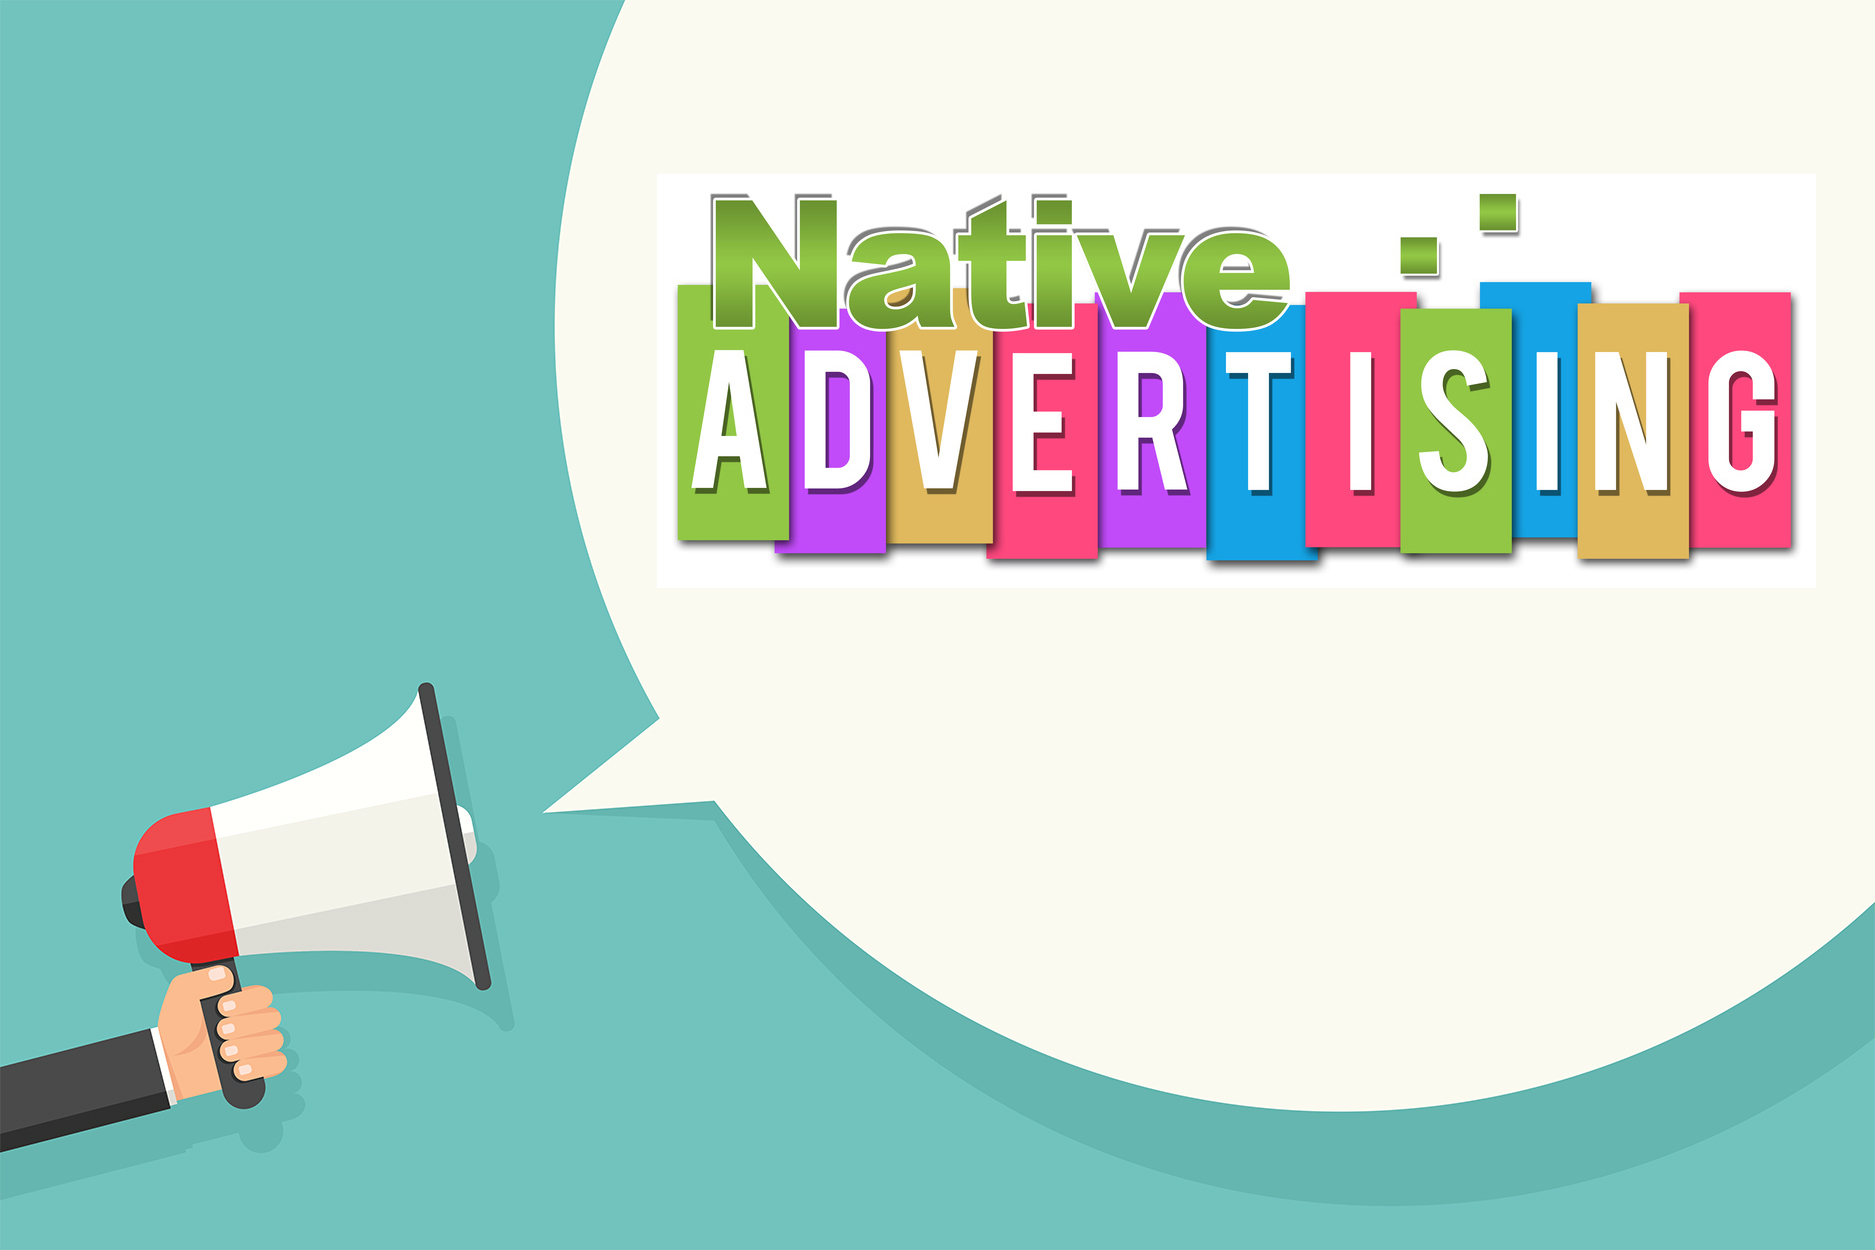 nativeadvertising